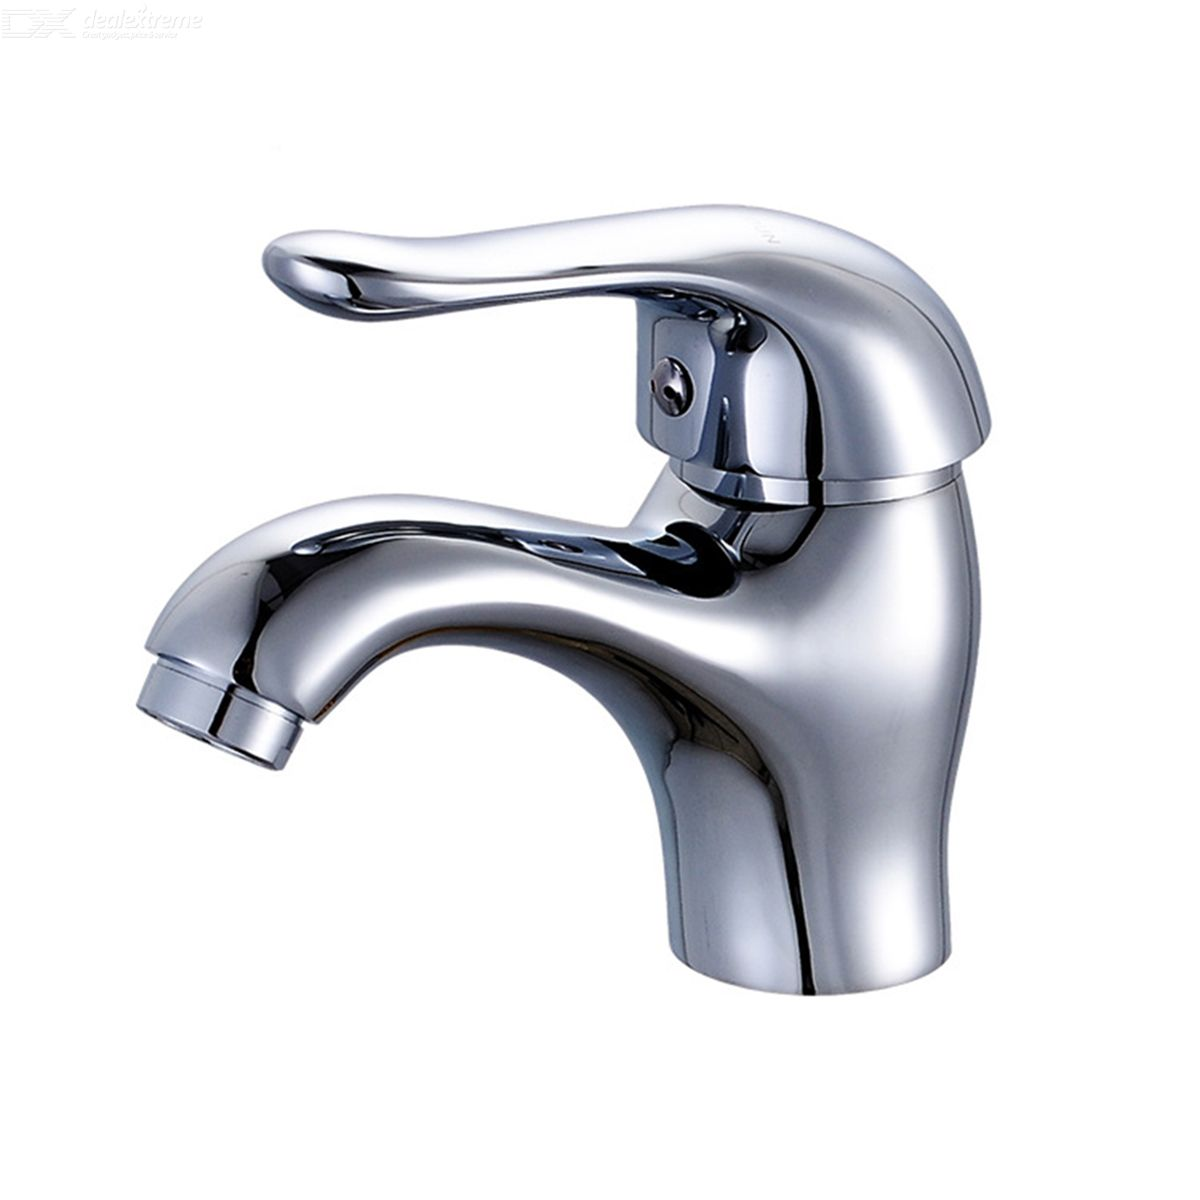 F-1613 Chrome Finish Brass Single Handle Sink Faucet - Silver